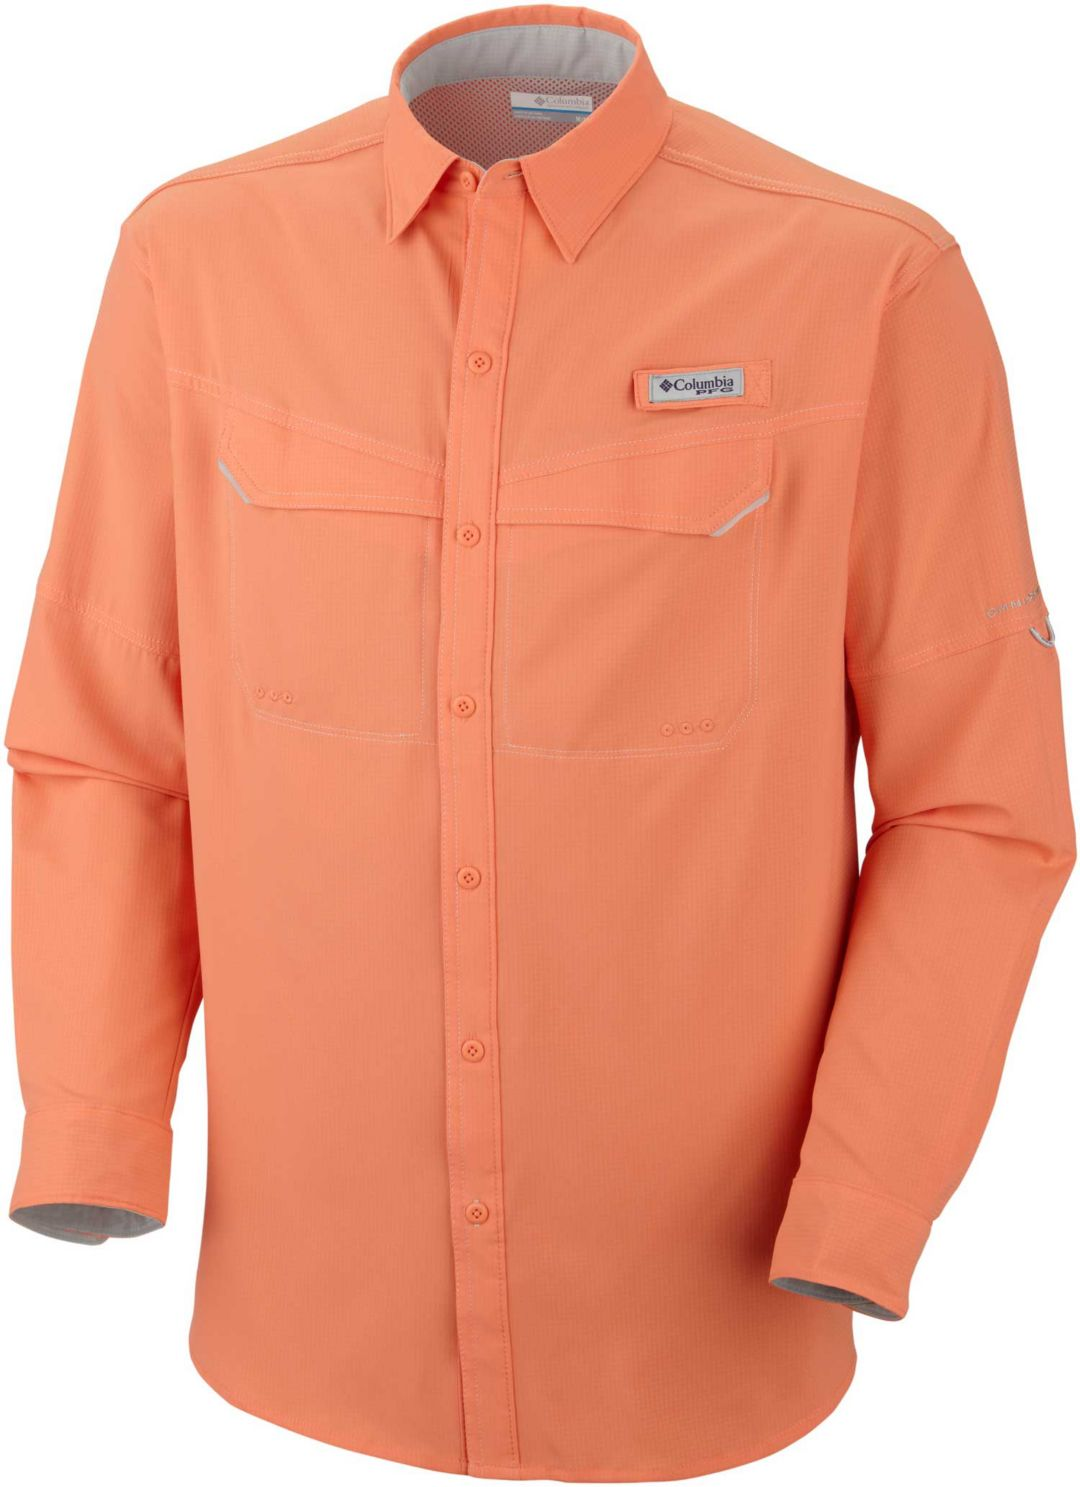 fcc6311c893 Columbia Men's PFG Low Drag Offshore Long Sleeve Shirt | Field & Stream